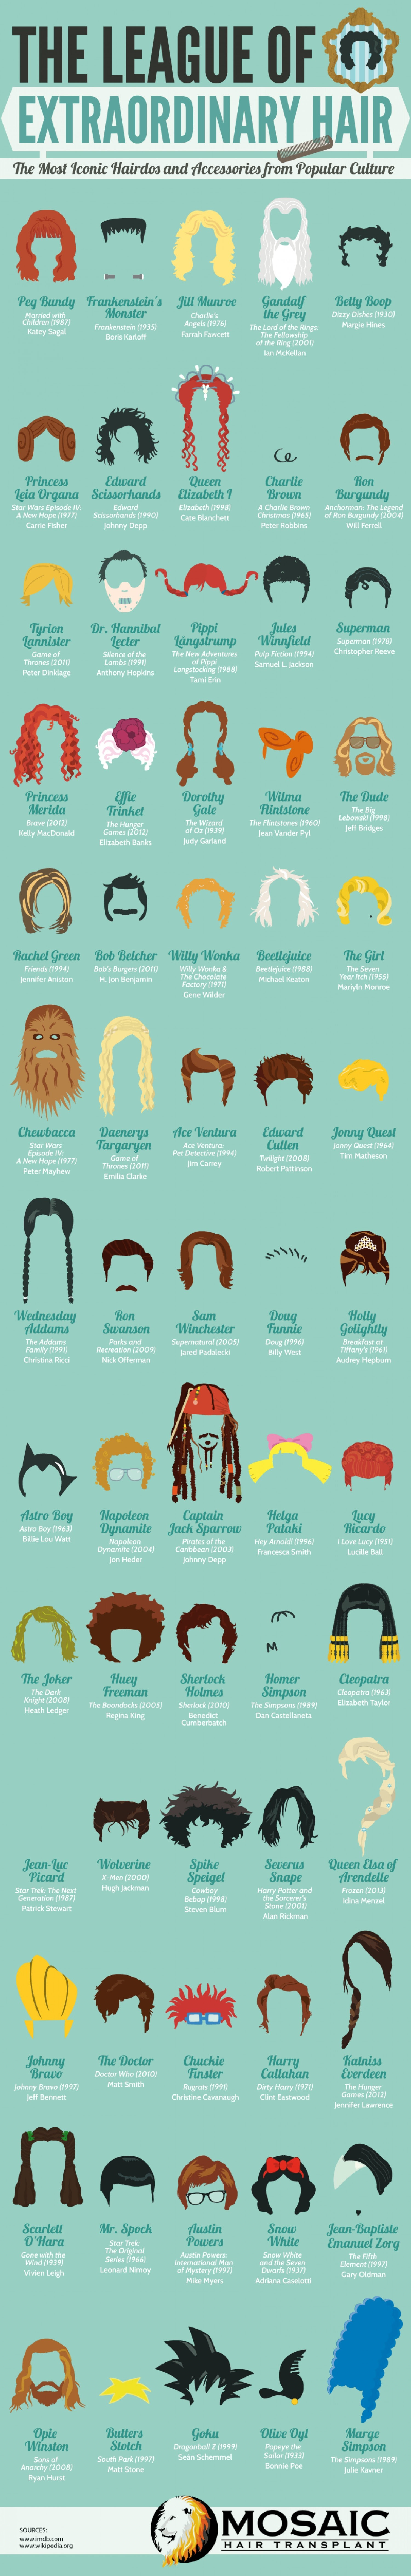 The League of Extraordinary Hair #infographic